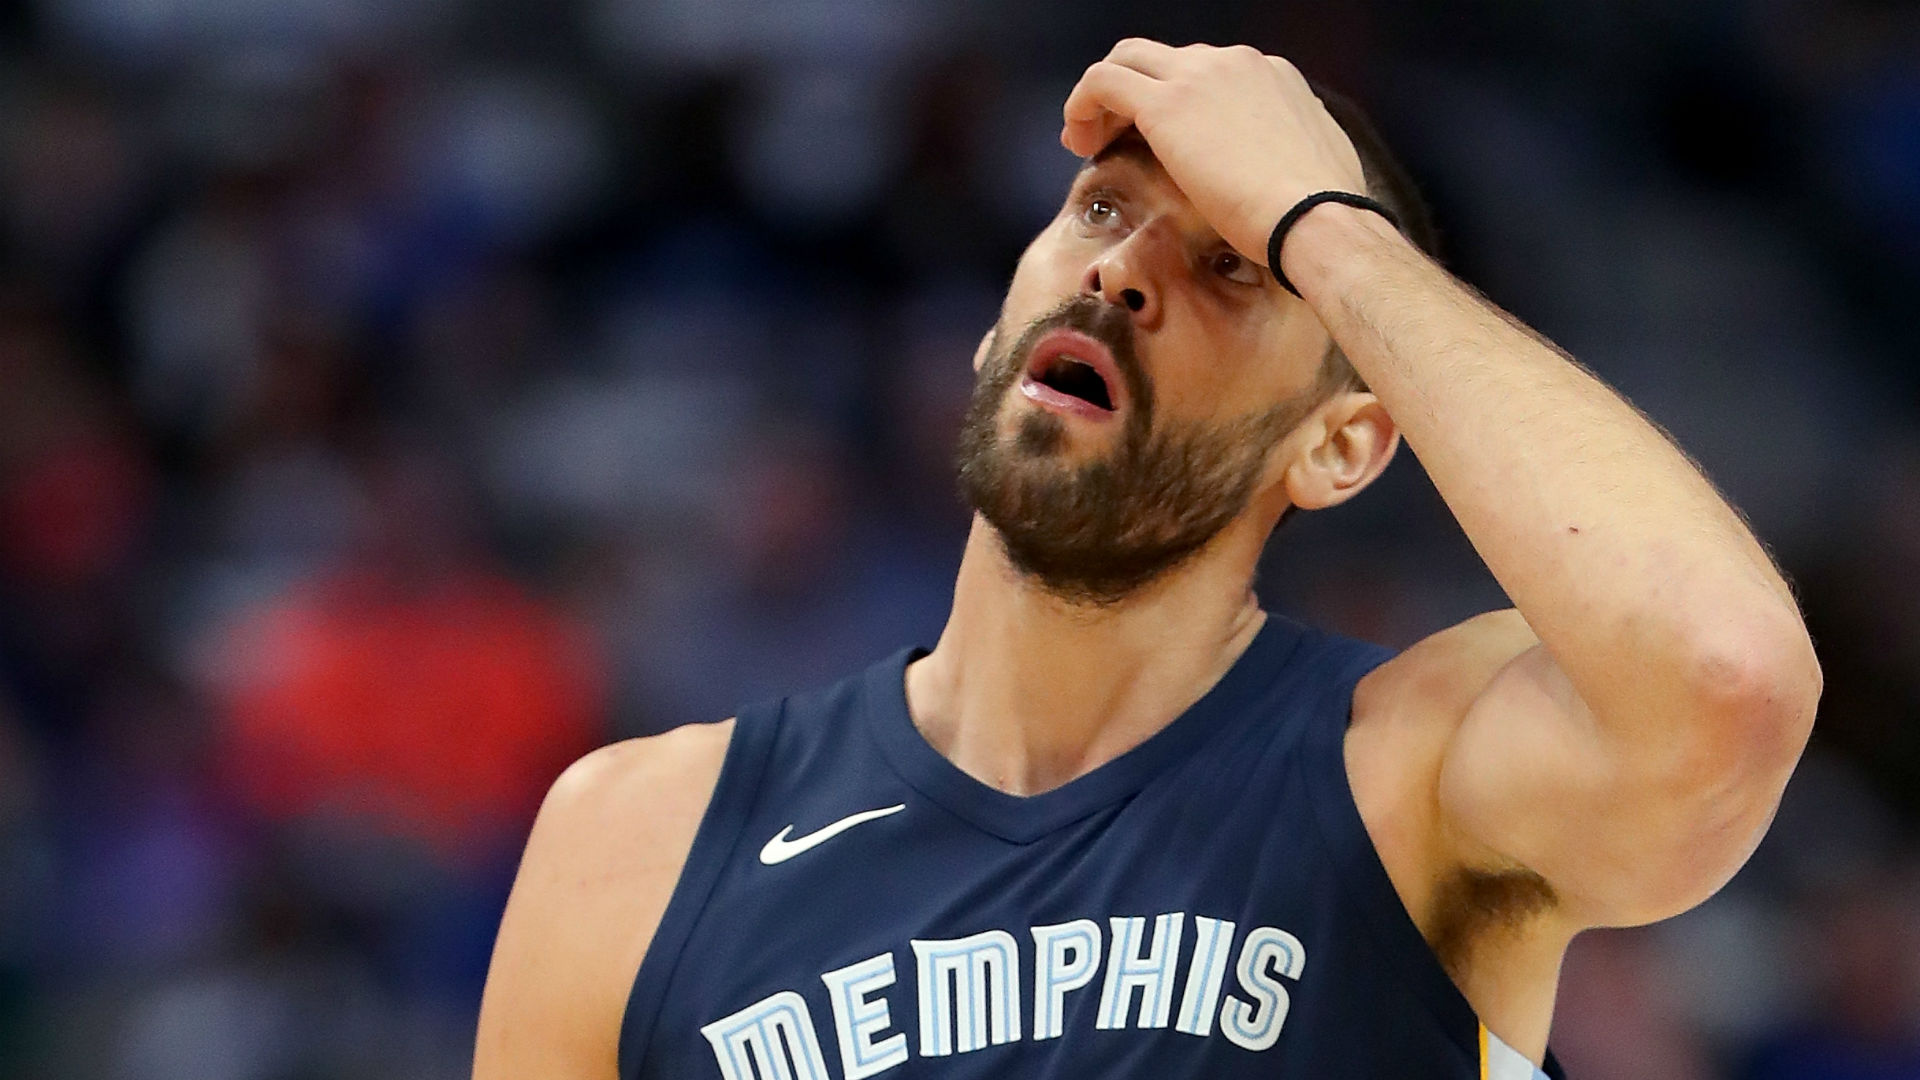 Grizzlies' firing of David Fizdale doesn't rule out Marc Gasol trade, SN sources say